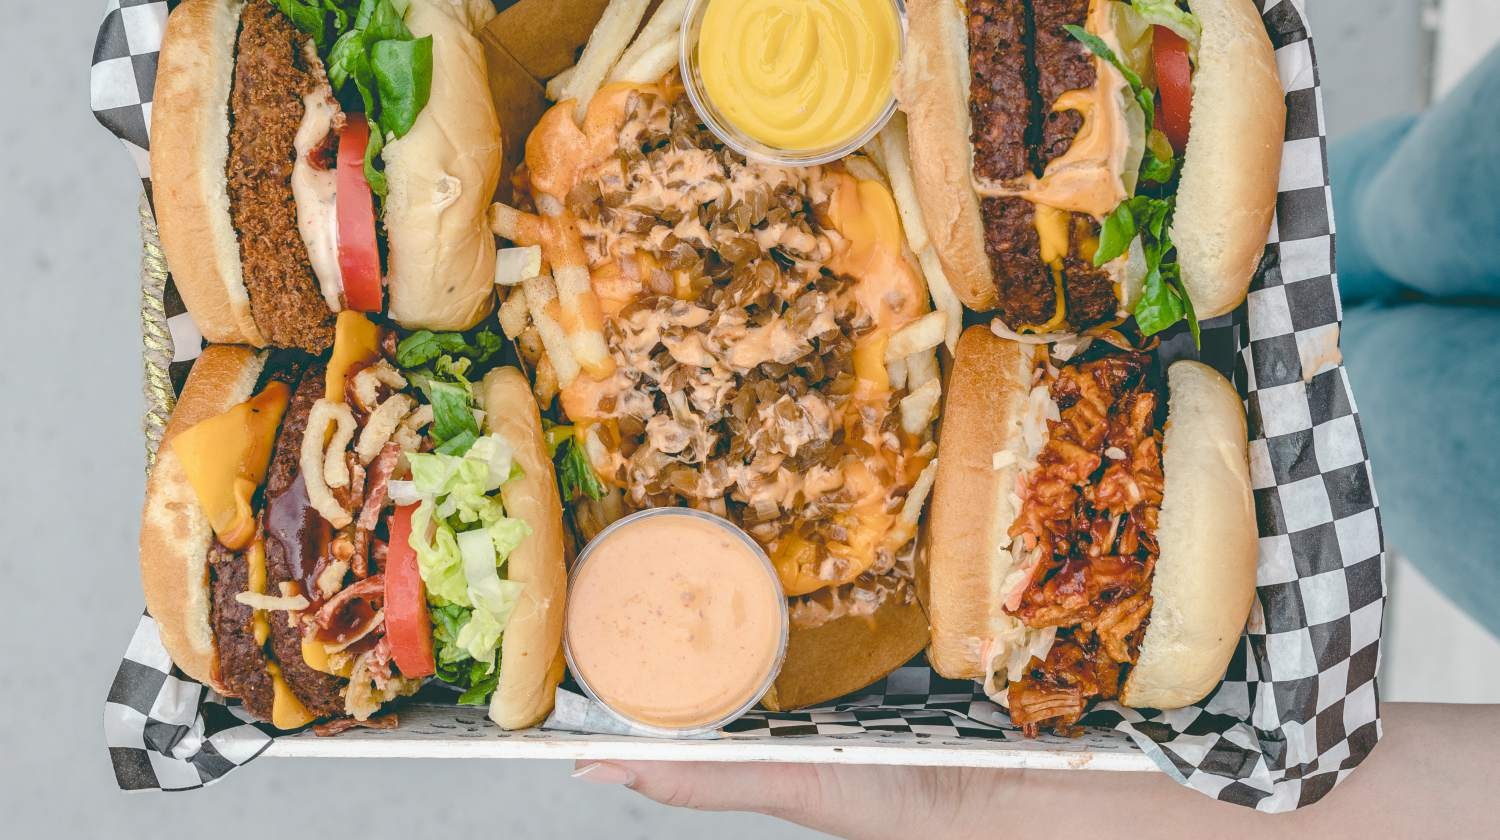 top view of tray of burgers and fries with mayo and cheese   fast food   keto fast food   low carb fast food   best fast food salad   Featured